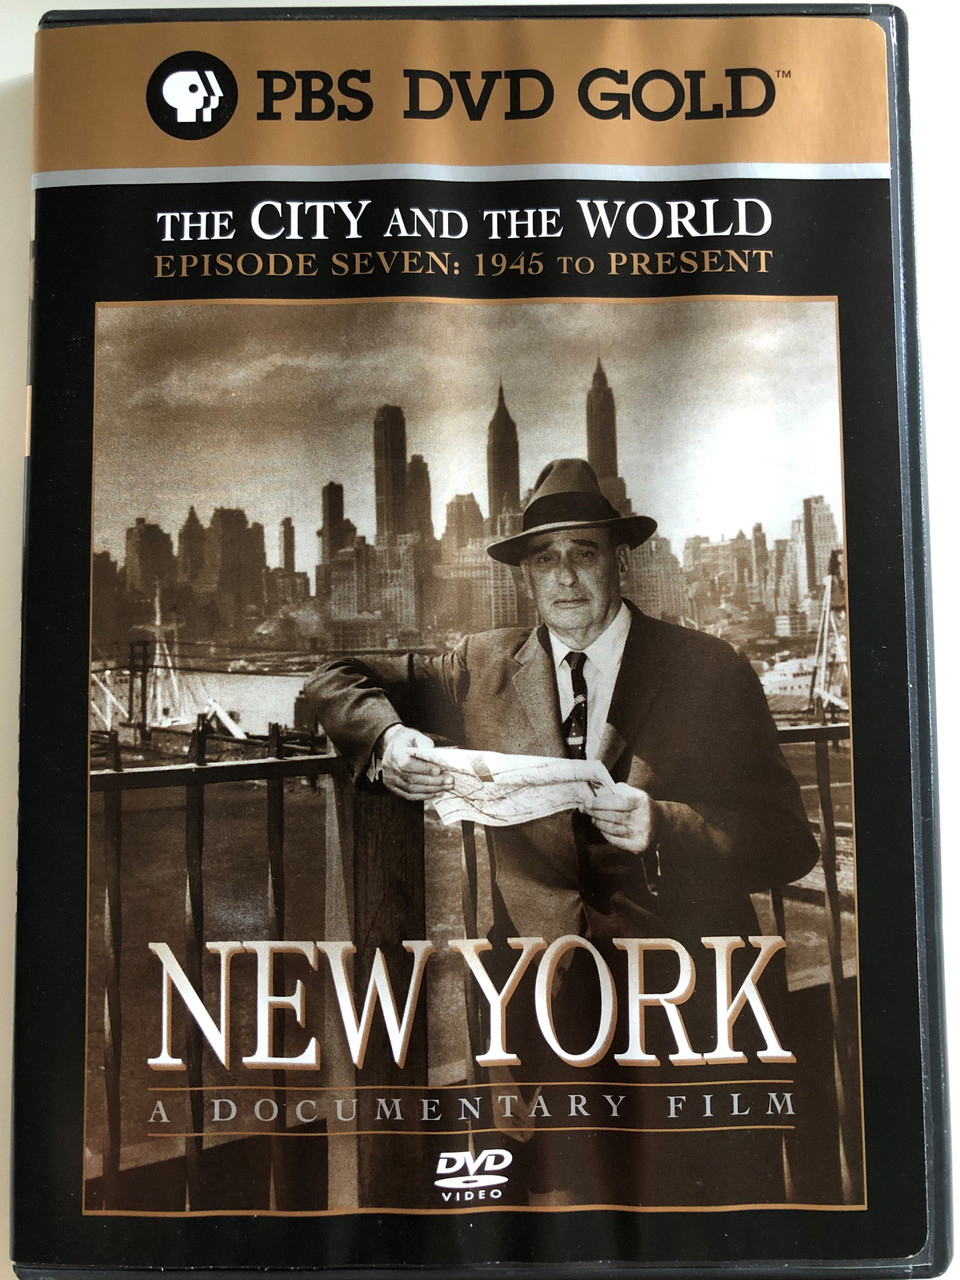 New York Episode 7 1945 To Present Dvd 2001 Directed By Ric Burns Produced By Lisa Ades Ric Burns And Steve Rivo Pbs Dvd Gold The History